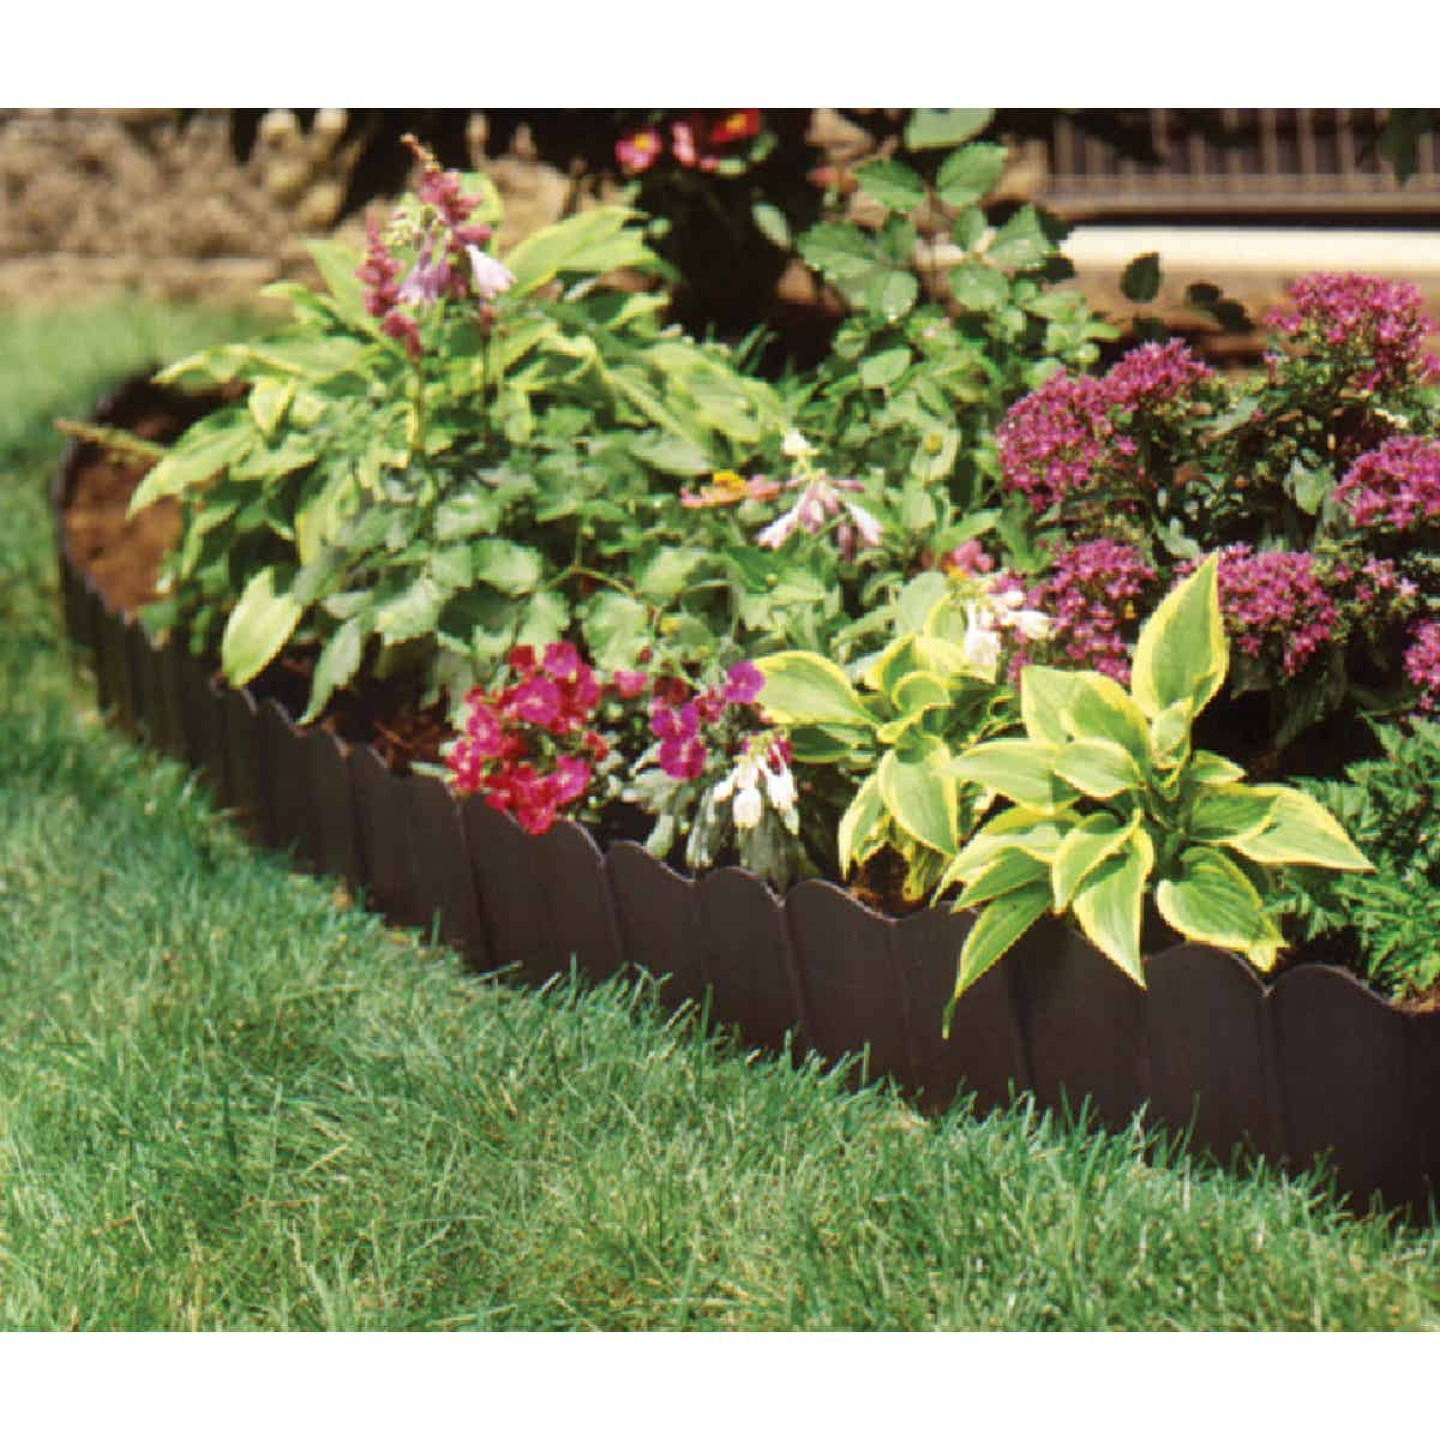 Suncast Eco Edge 6 In. H. x 20 Ft. L. Black Vinyl Lawn Edging Image 1